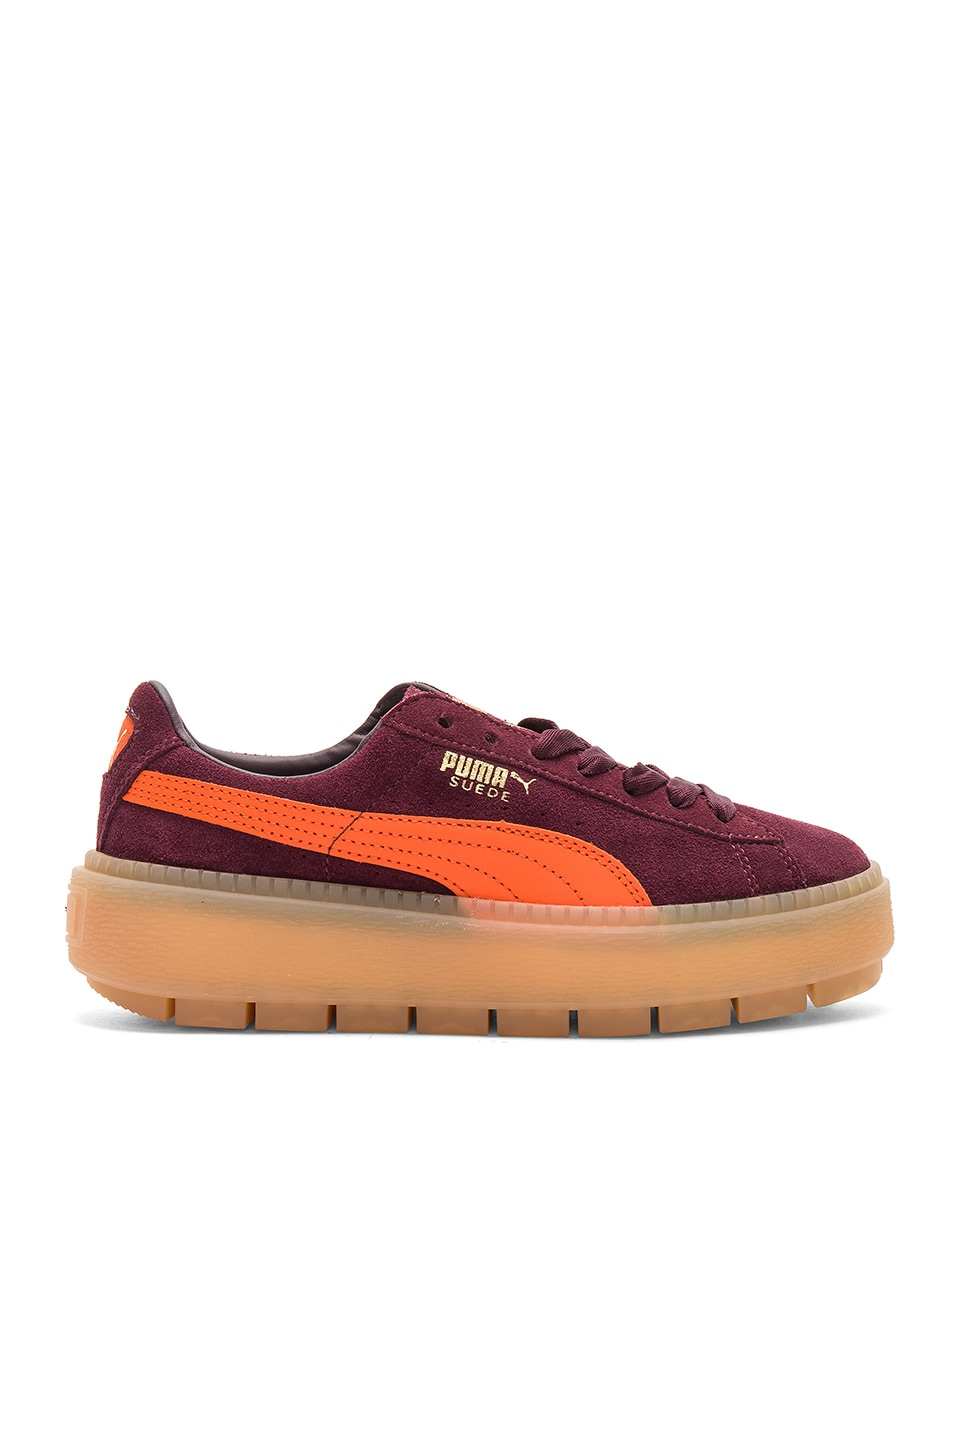 separation shoes 90519 ff1f1 Puma Suede Platform Trace Block Sneaker in Winetasting ...